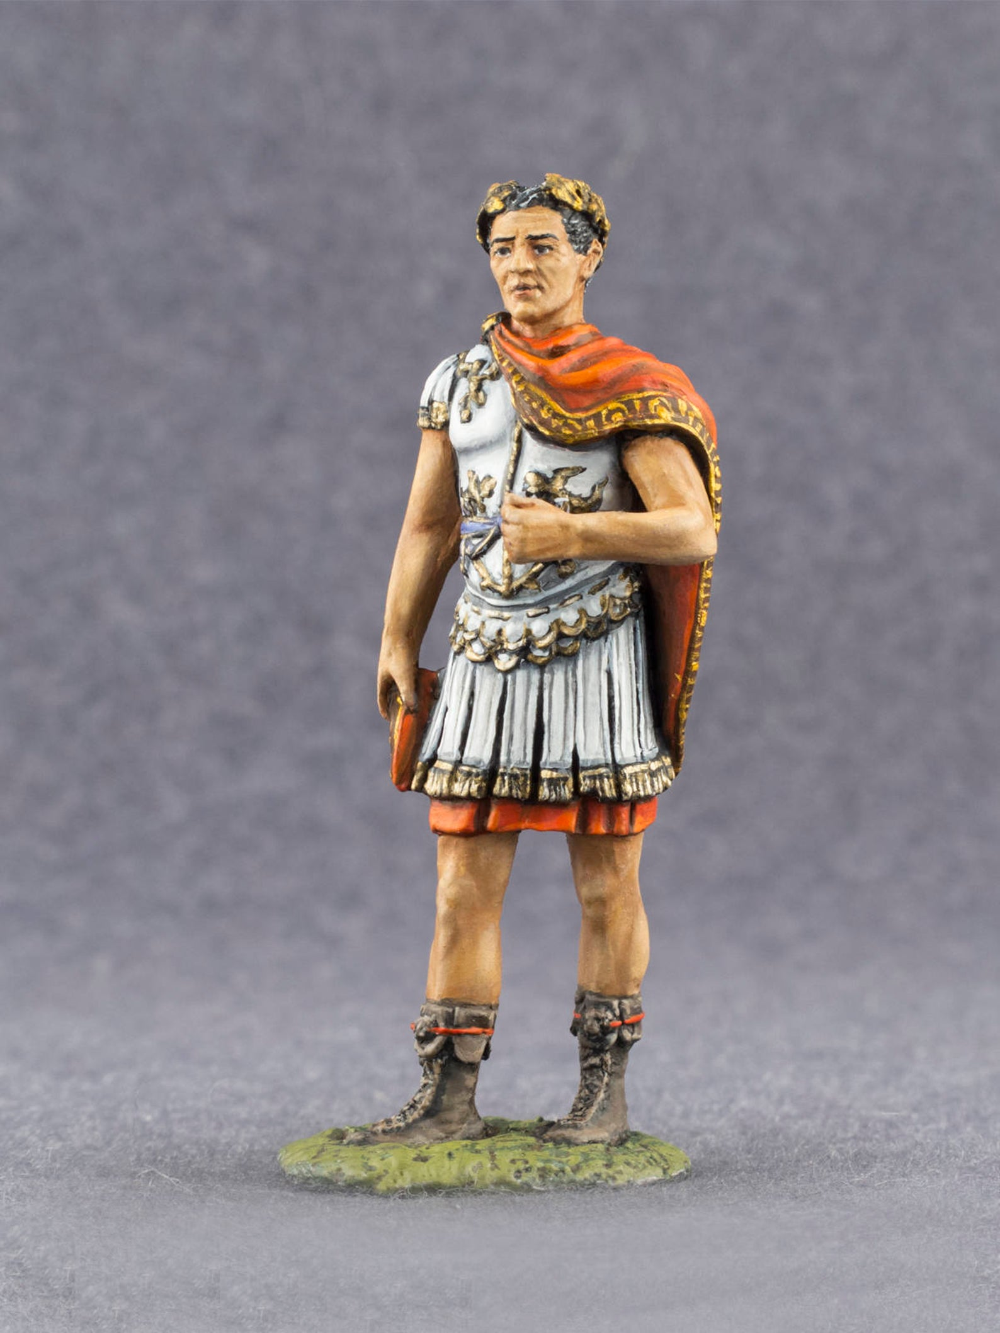 Toy Soldiers Gaius Julius Caesar 1 32 Scale 54mm Hand Painted Etsy Toy Soldiers Hobbies For Men Girl Poses